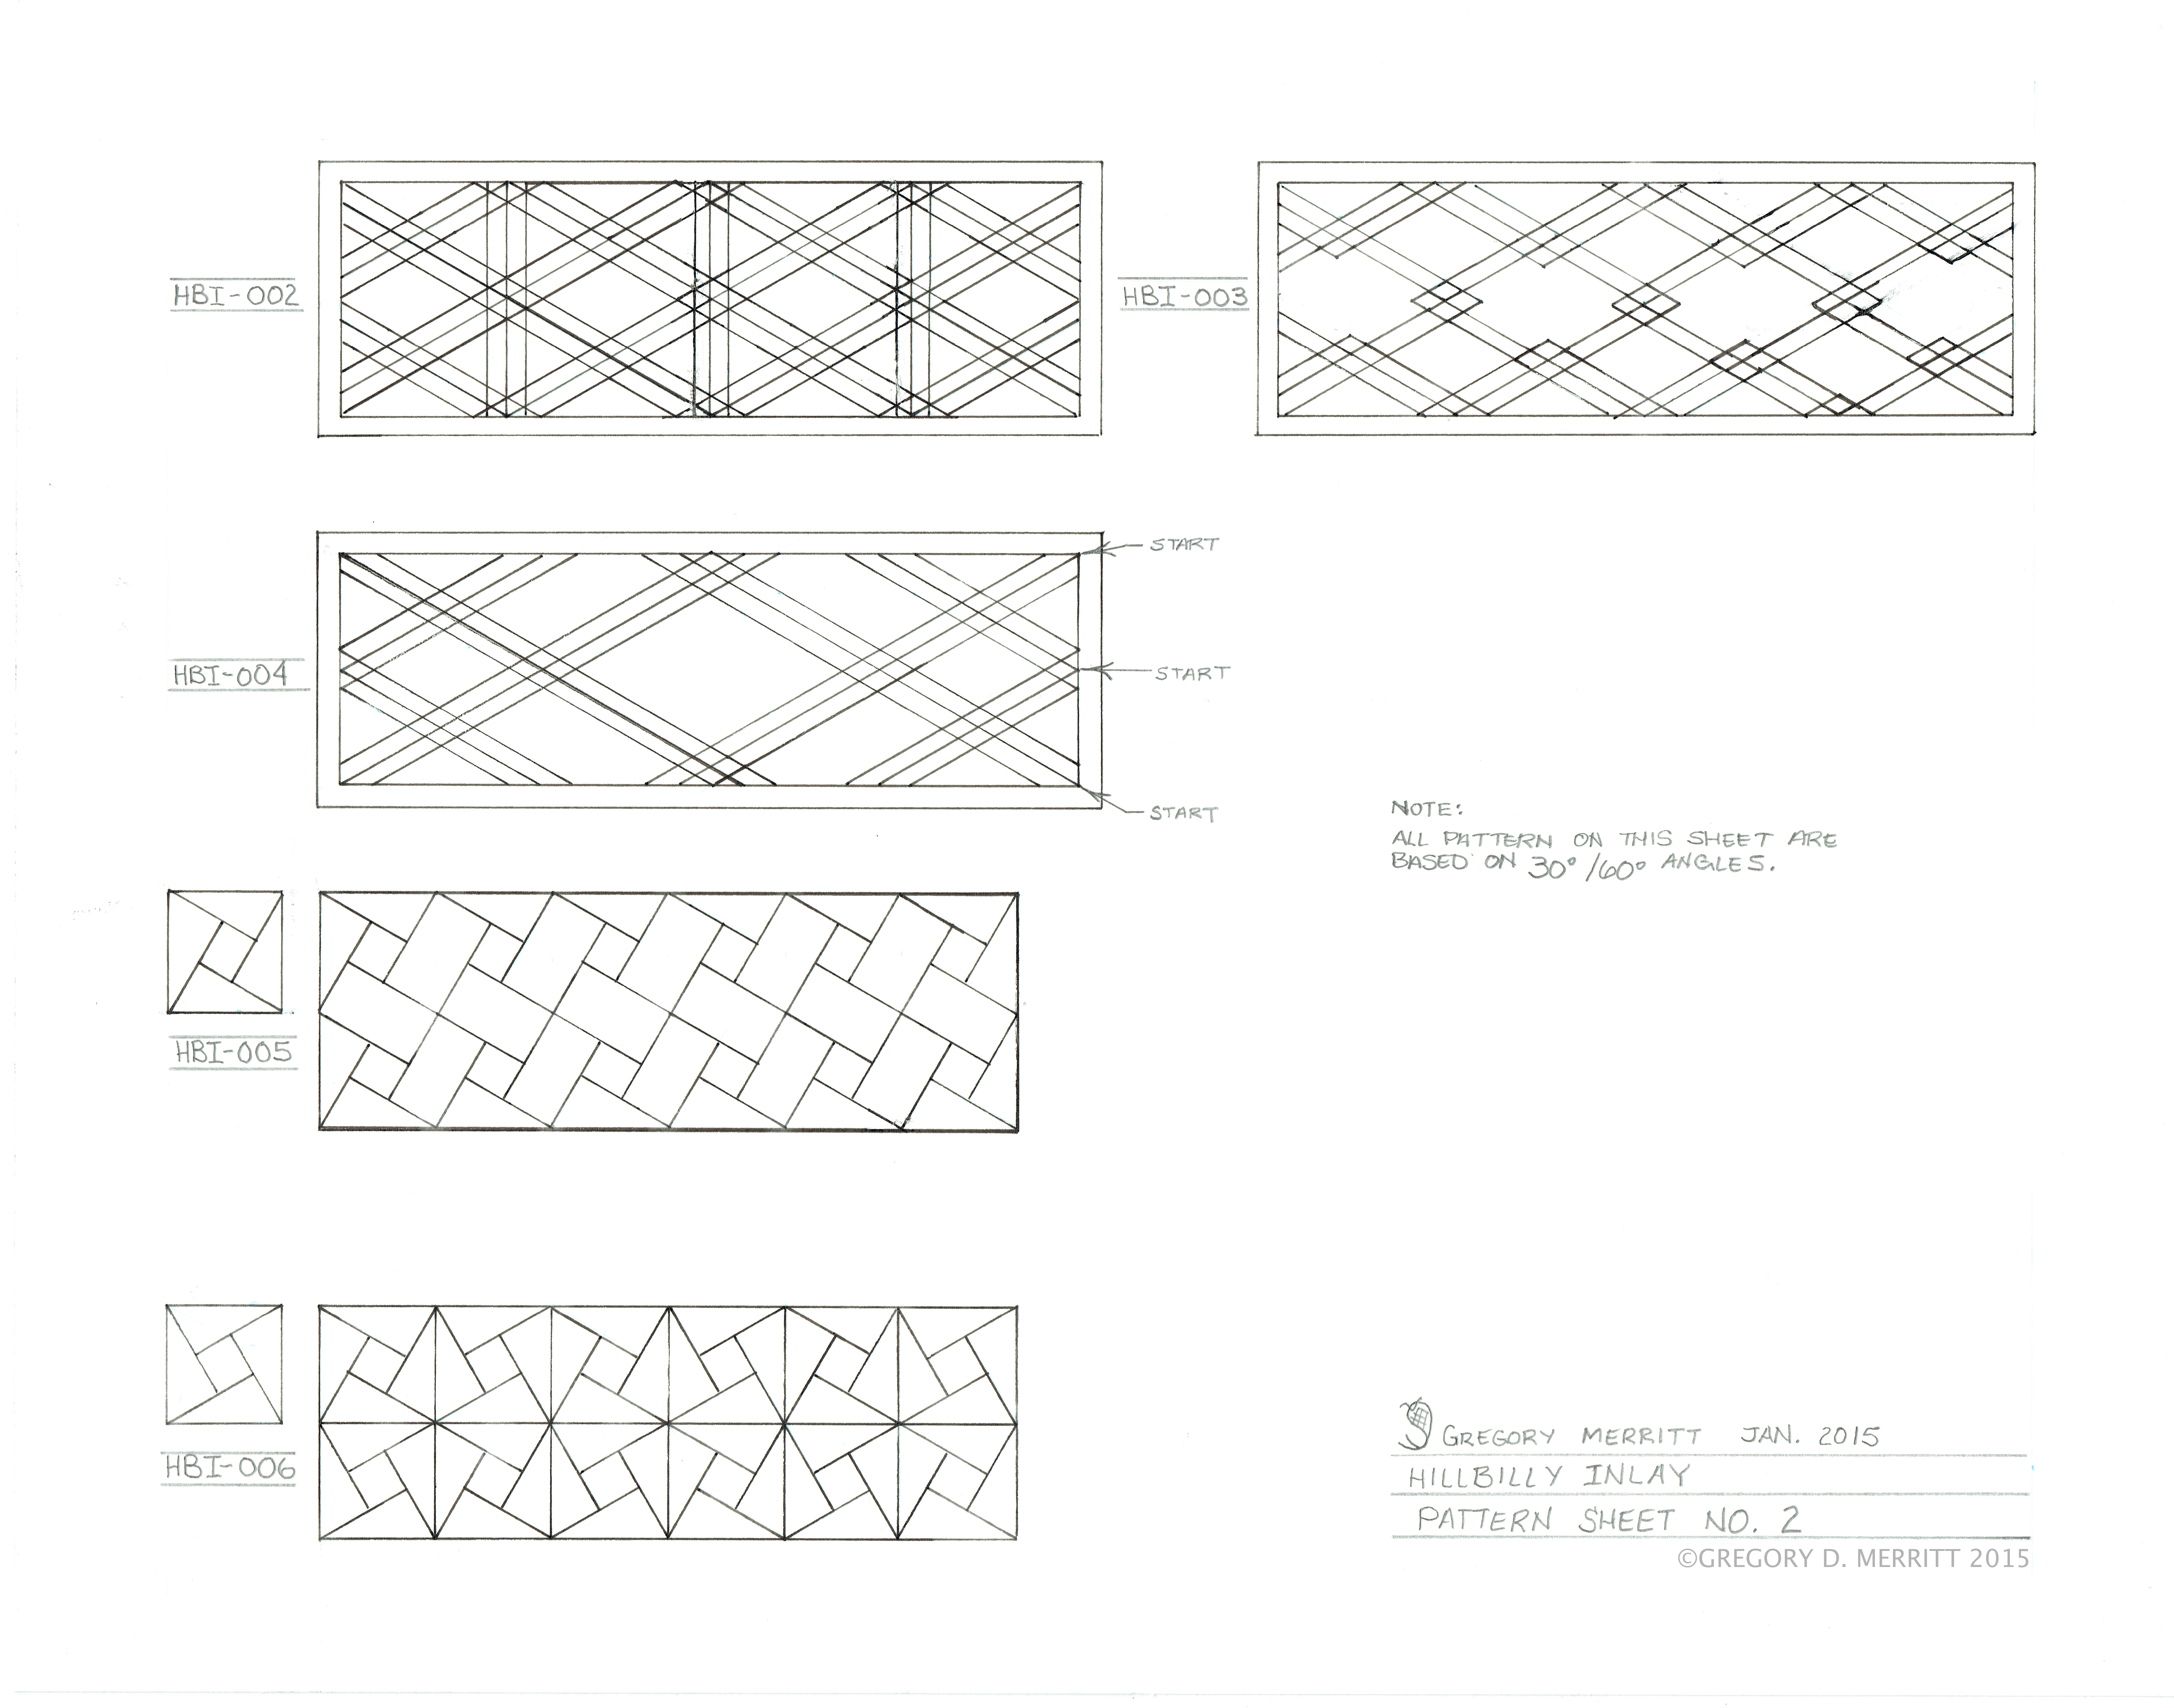 South West Inlay Designs And Patterns : Hillbilly inlay pattern development sheet no